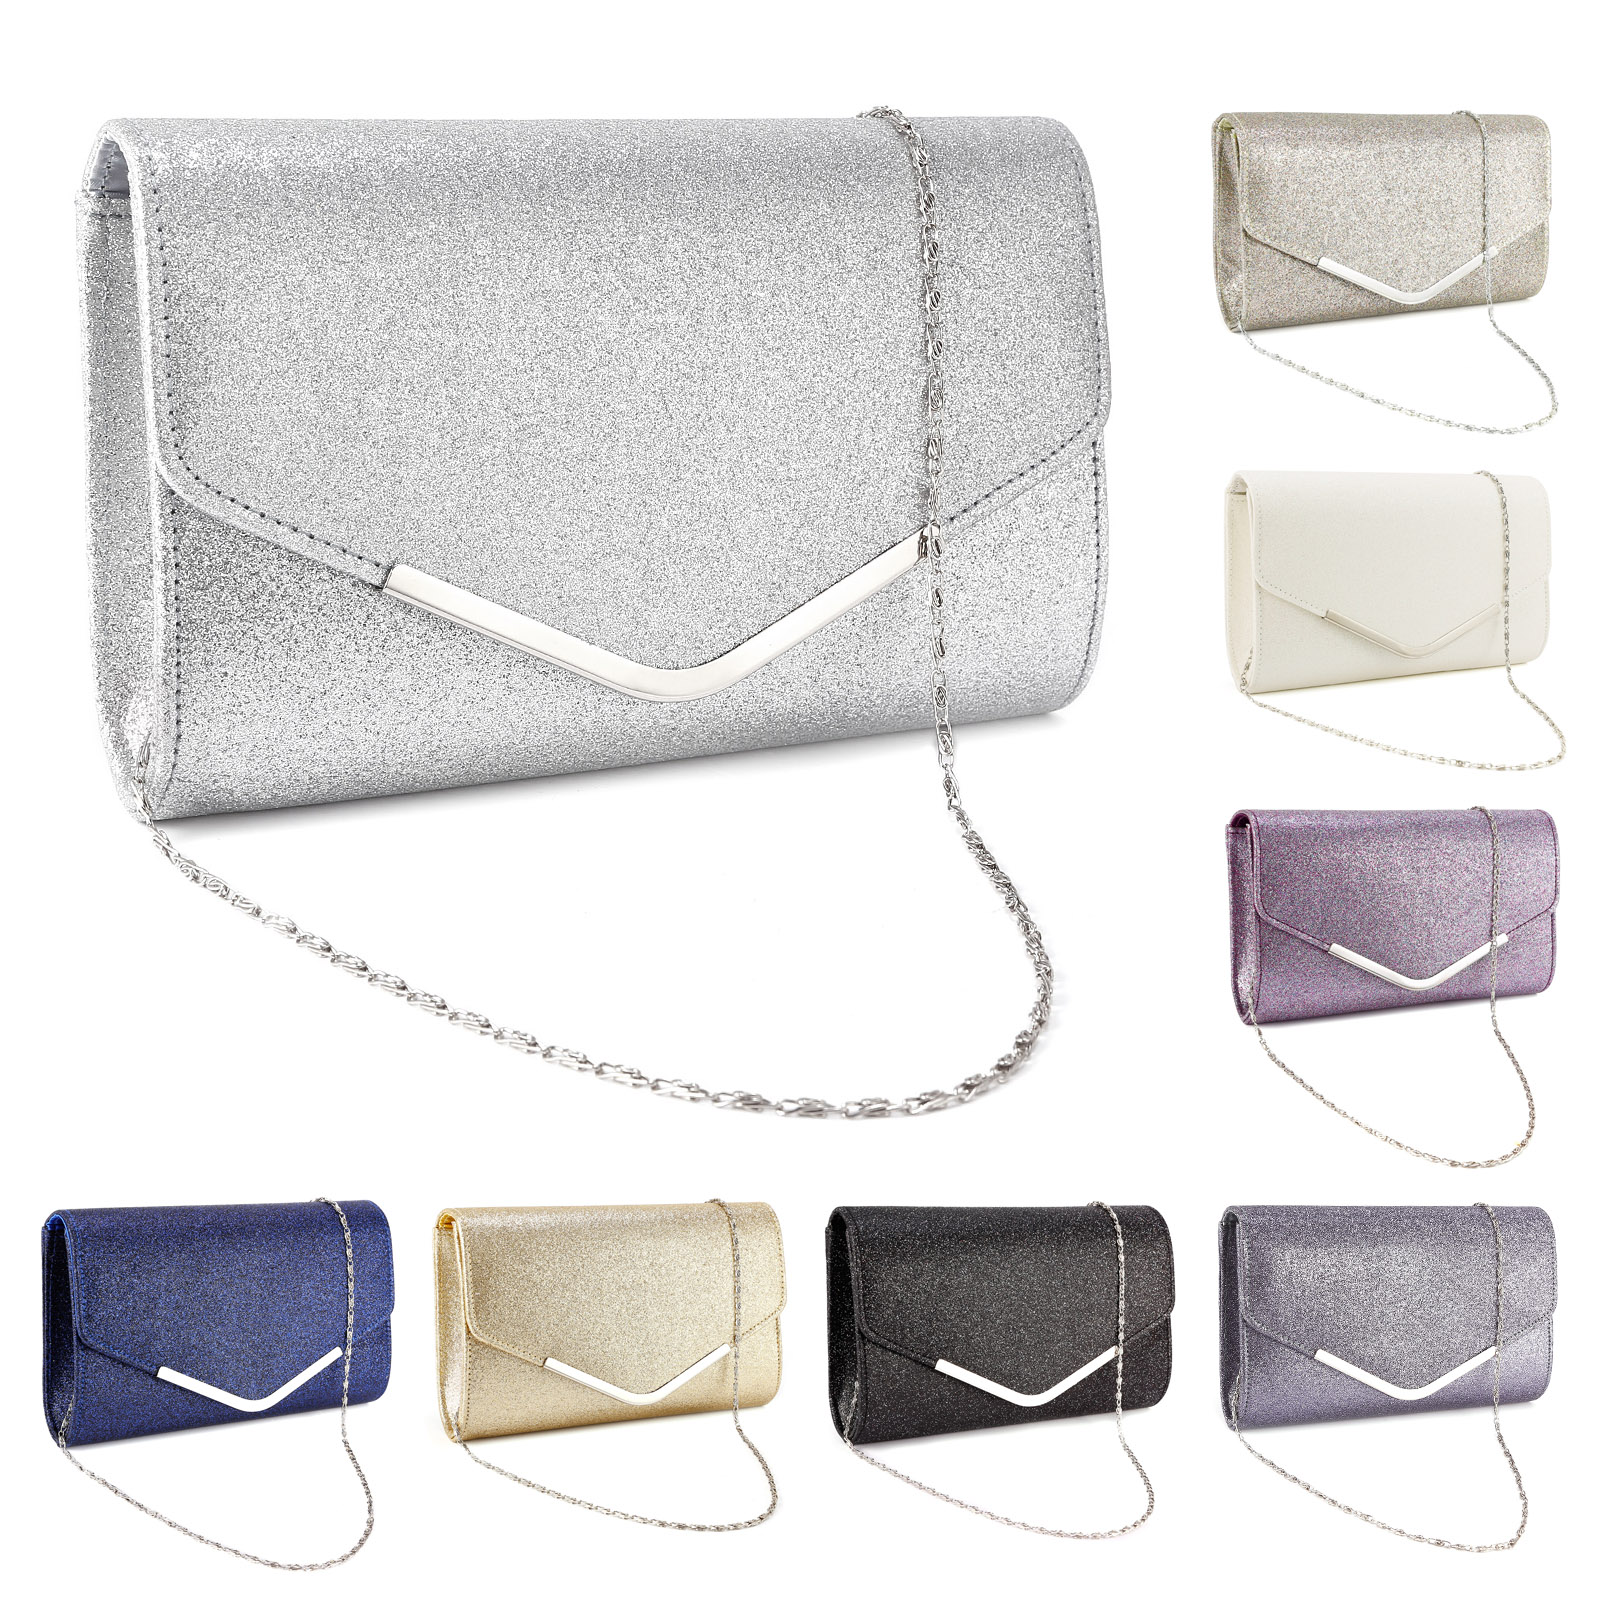 LADIES SHIMMER GLITTER BRIDAL PARTY EVENING PROM ENVELOPE CLUTCH BAG